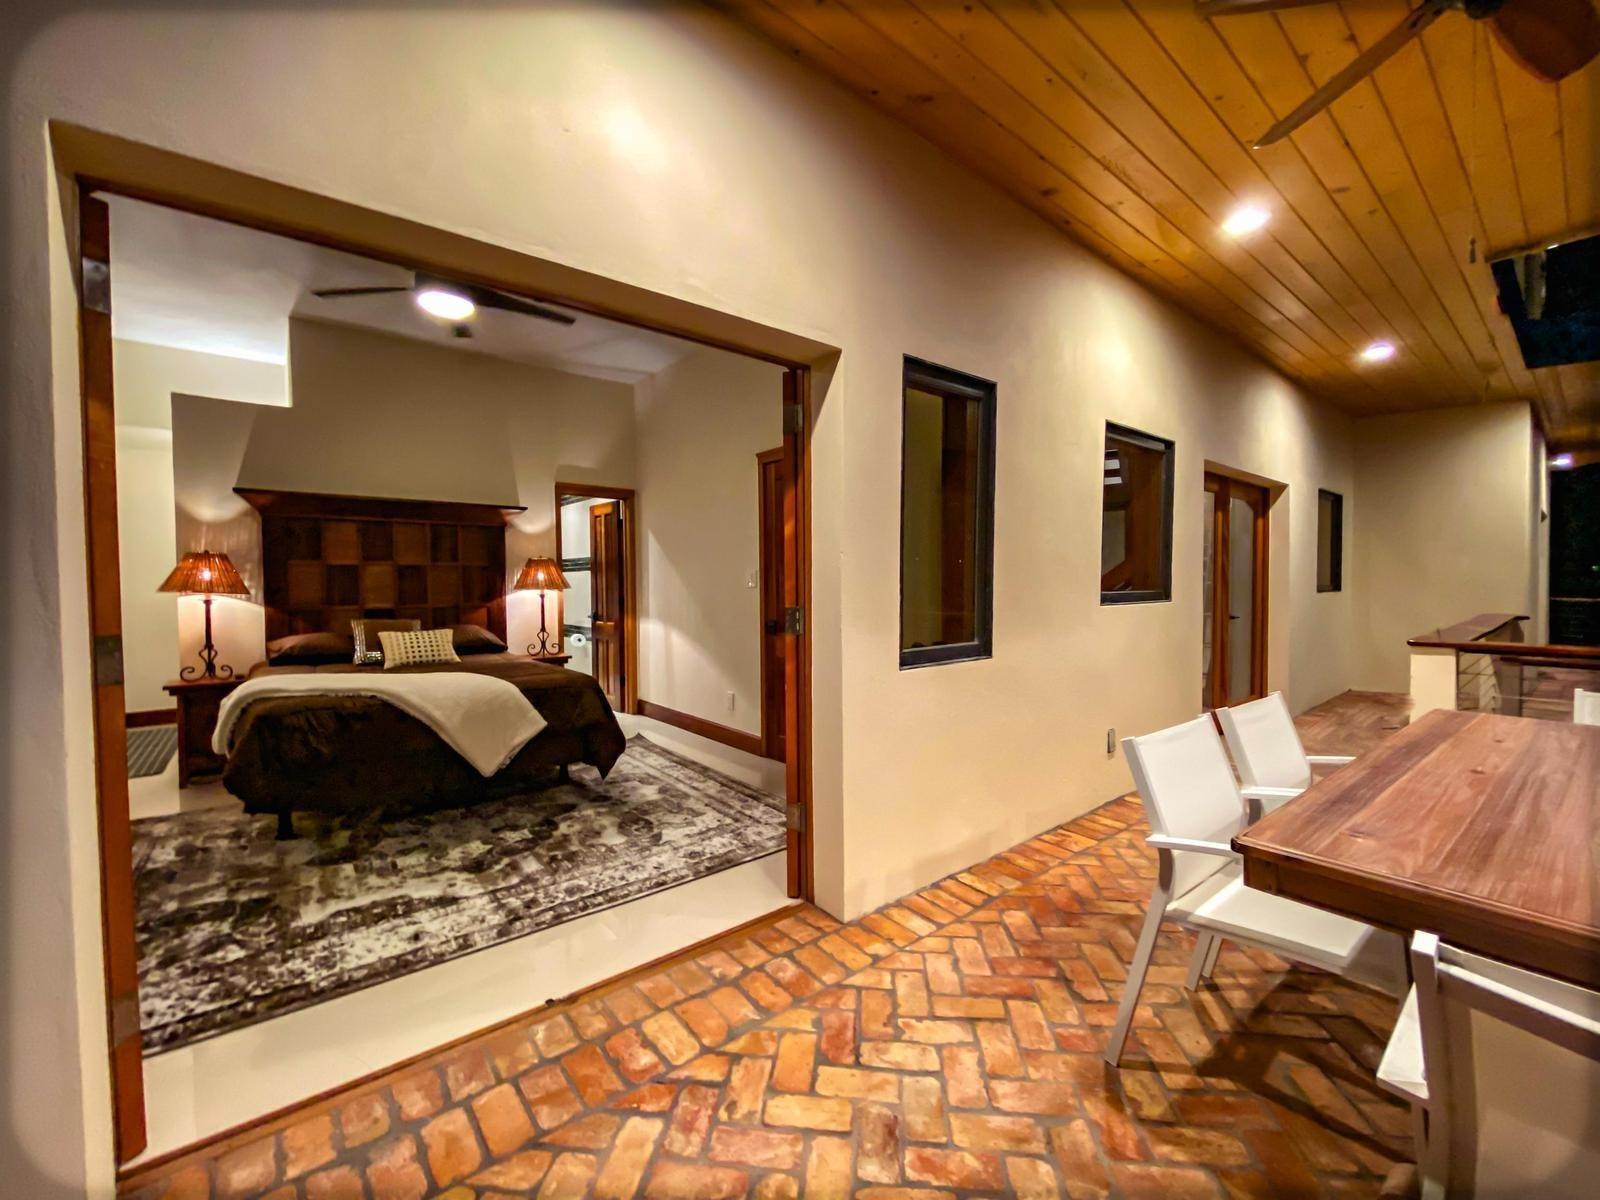 25. Single Family Homes for Sale at C-2-H & C- Lovenlund GNS St Thomas, Virgin Islands 00802 United States Virgin Islands